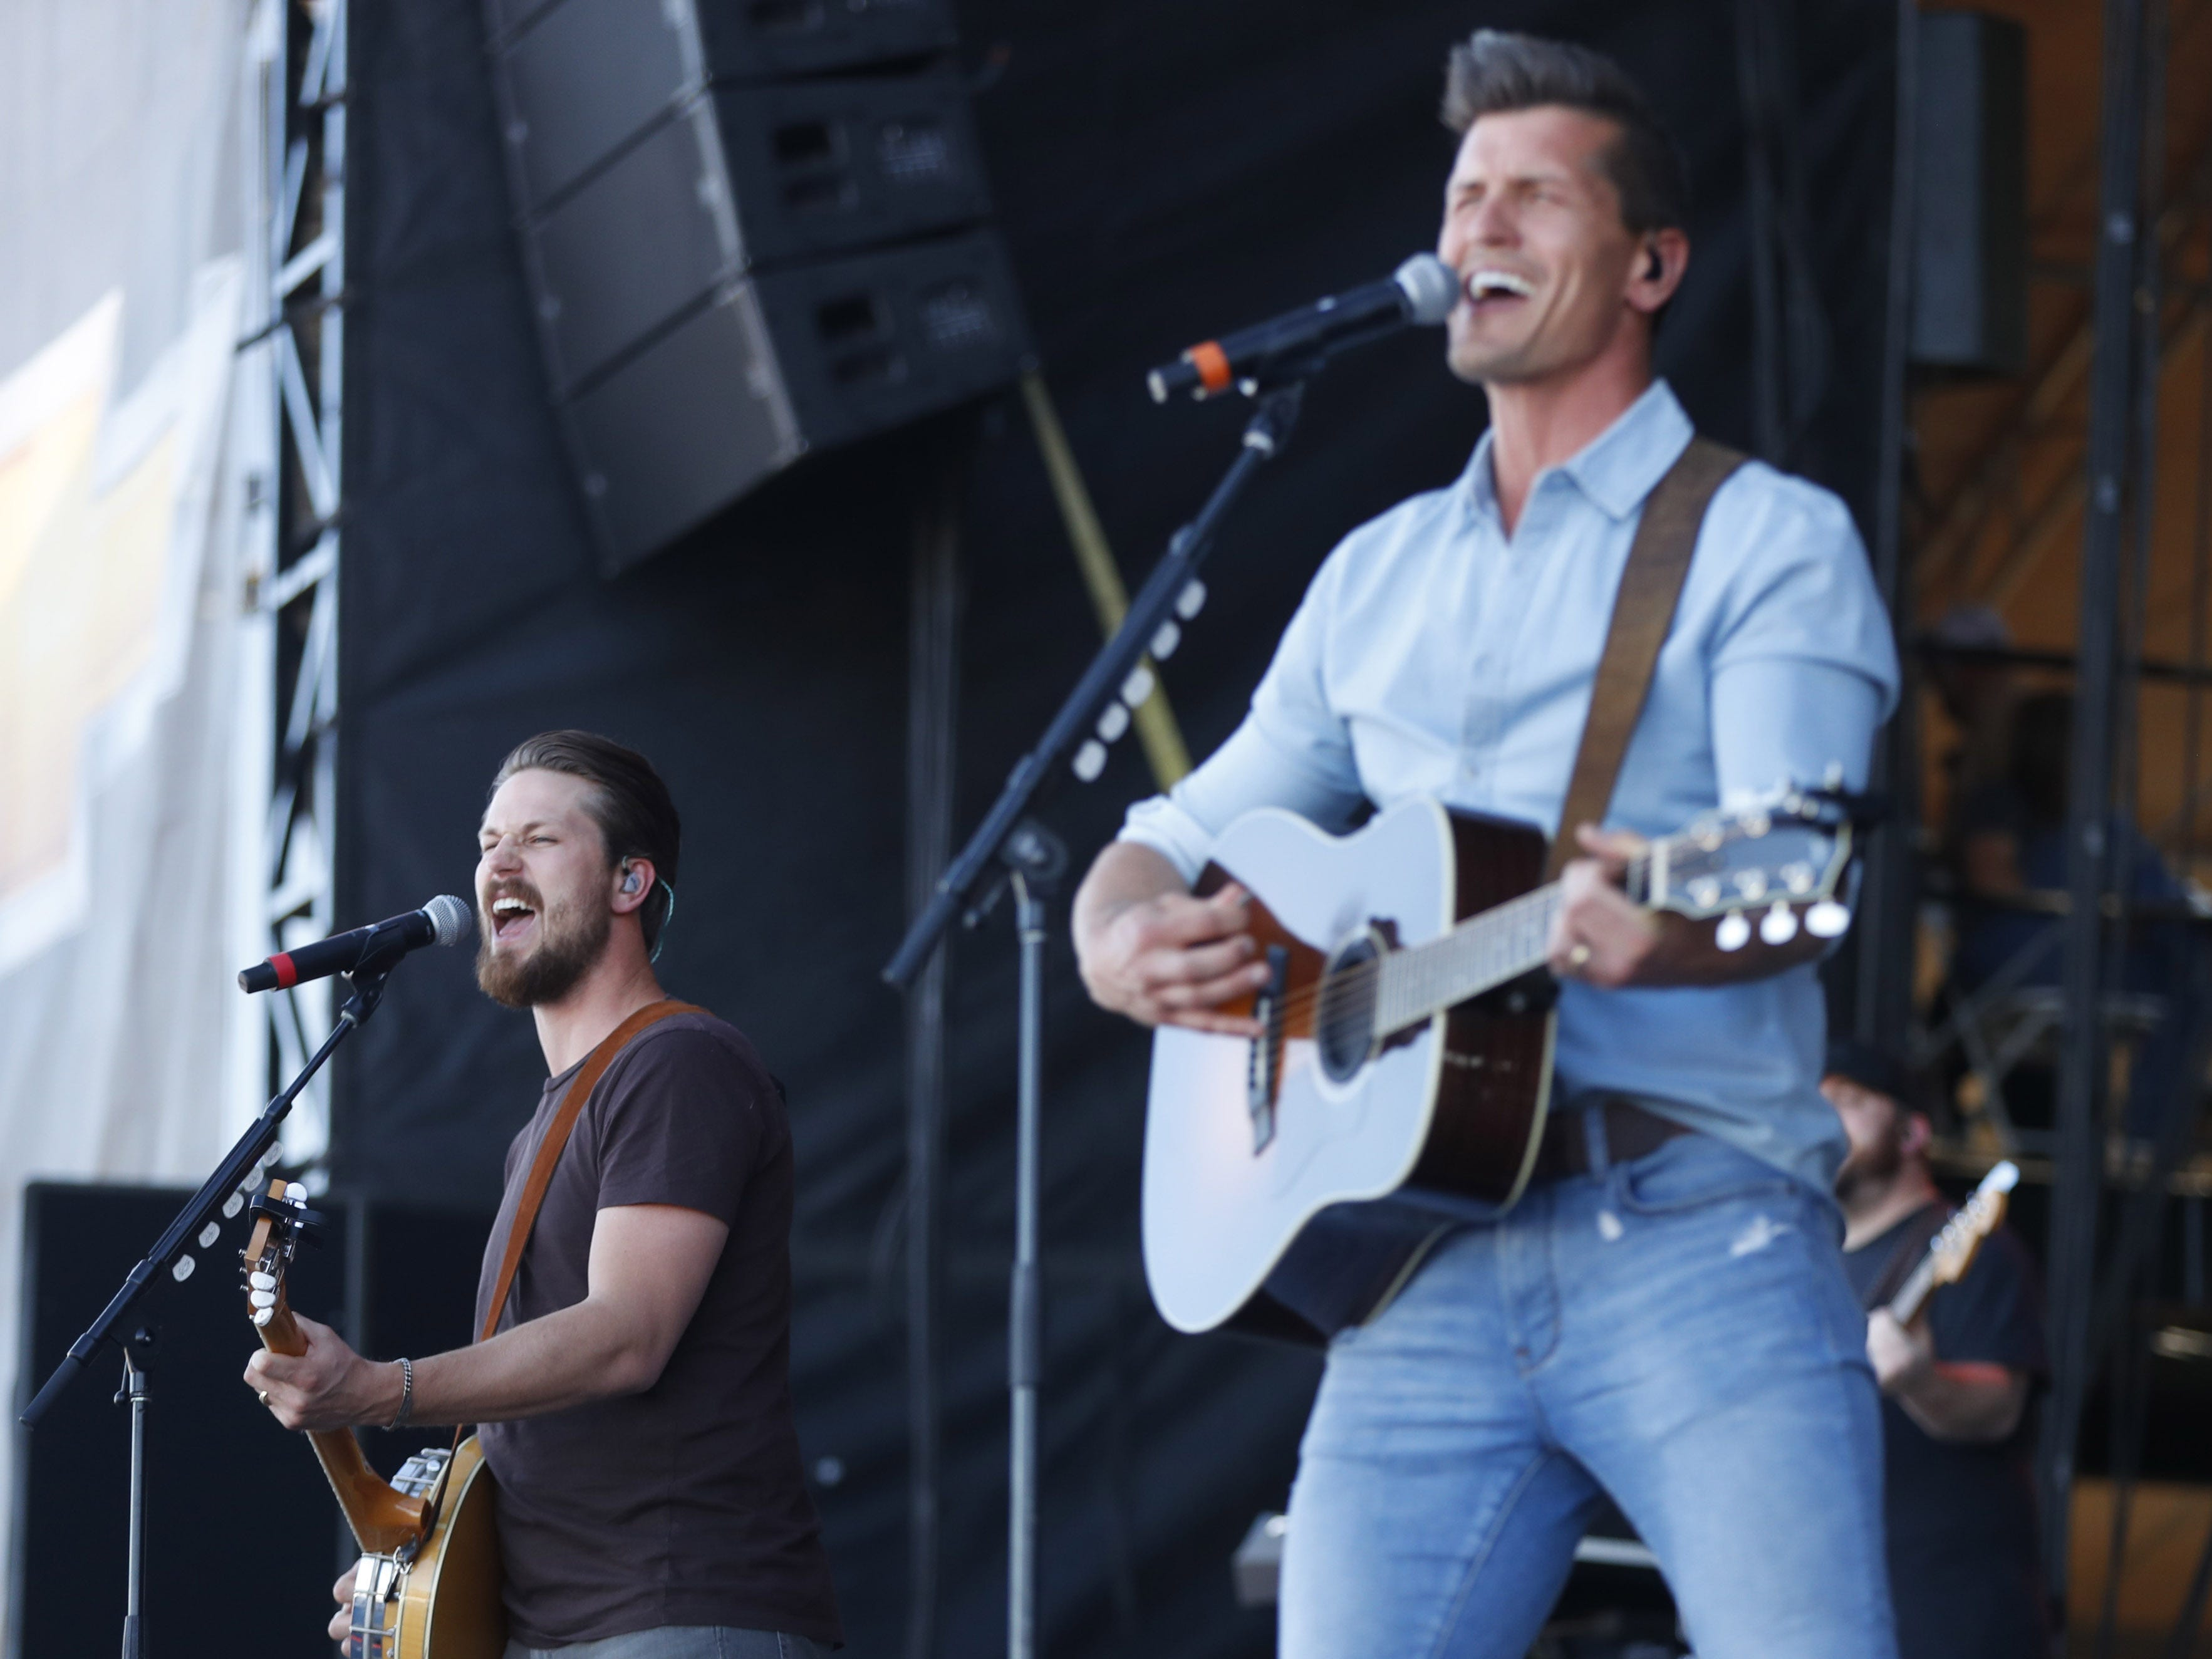 High Valley's Curtis Rempel (L) and Brad Rempel perform during Country Thunder in Florence, Ariz. on Saturday, April 13, 2019.